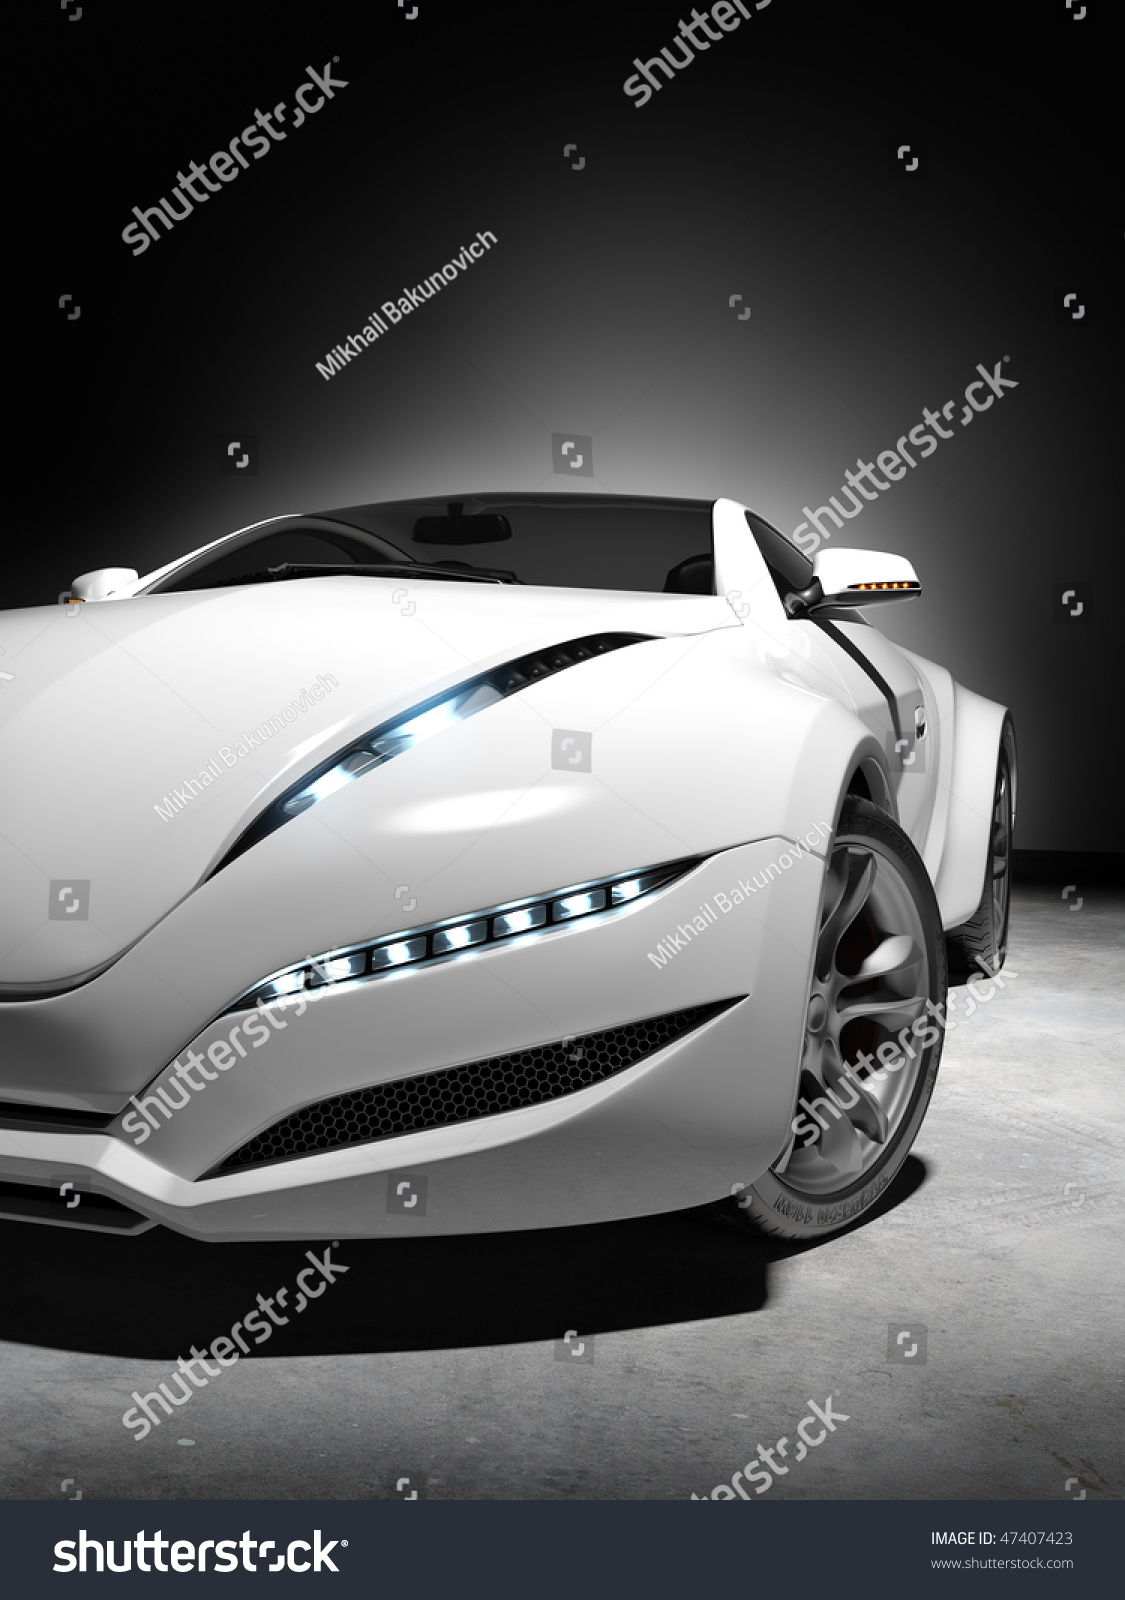 Design my car - Concept Car My Own Car Design Not Associated With Any Brand